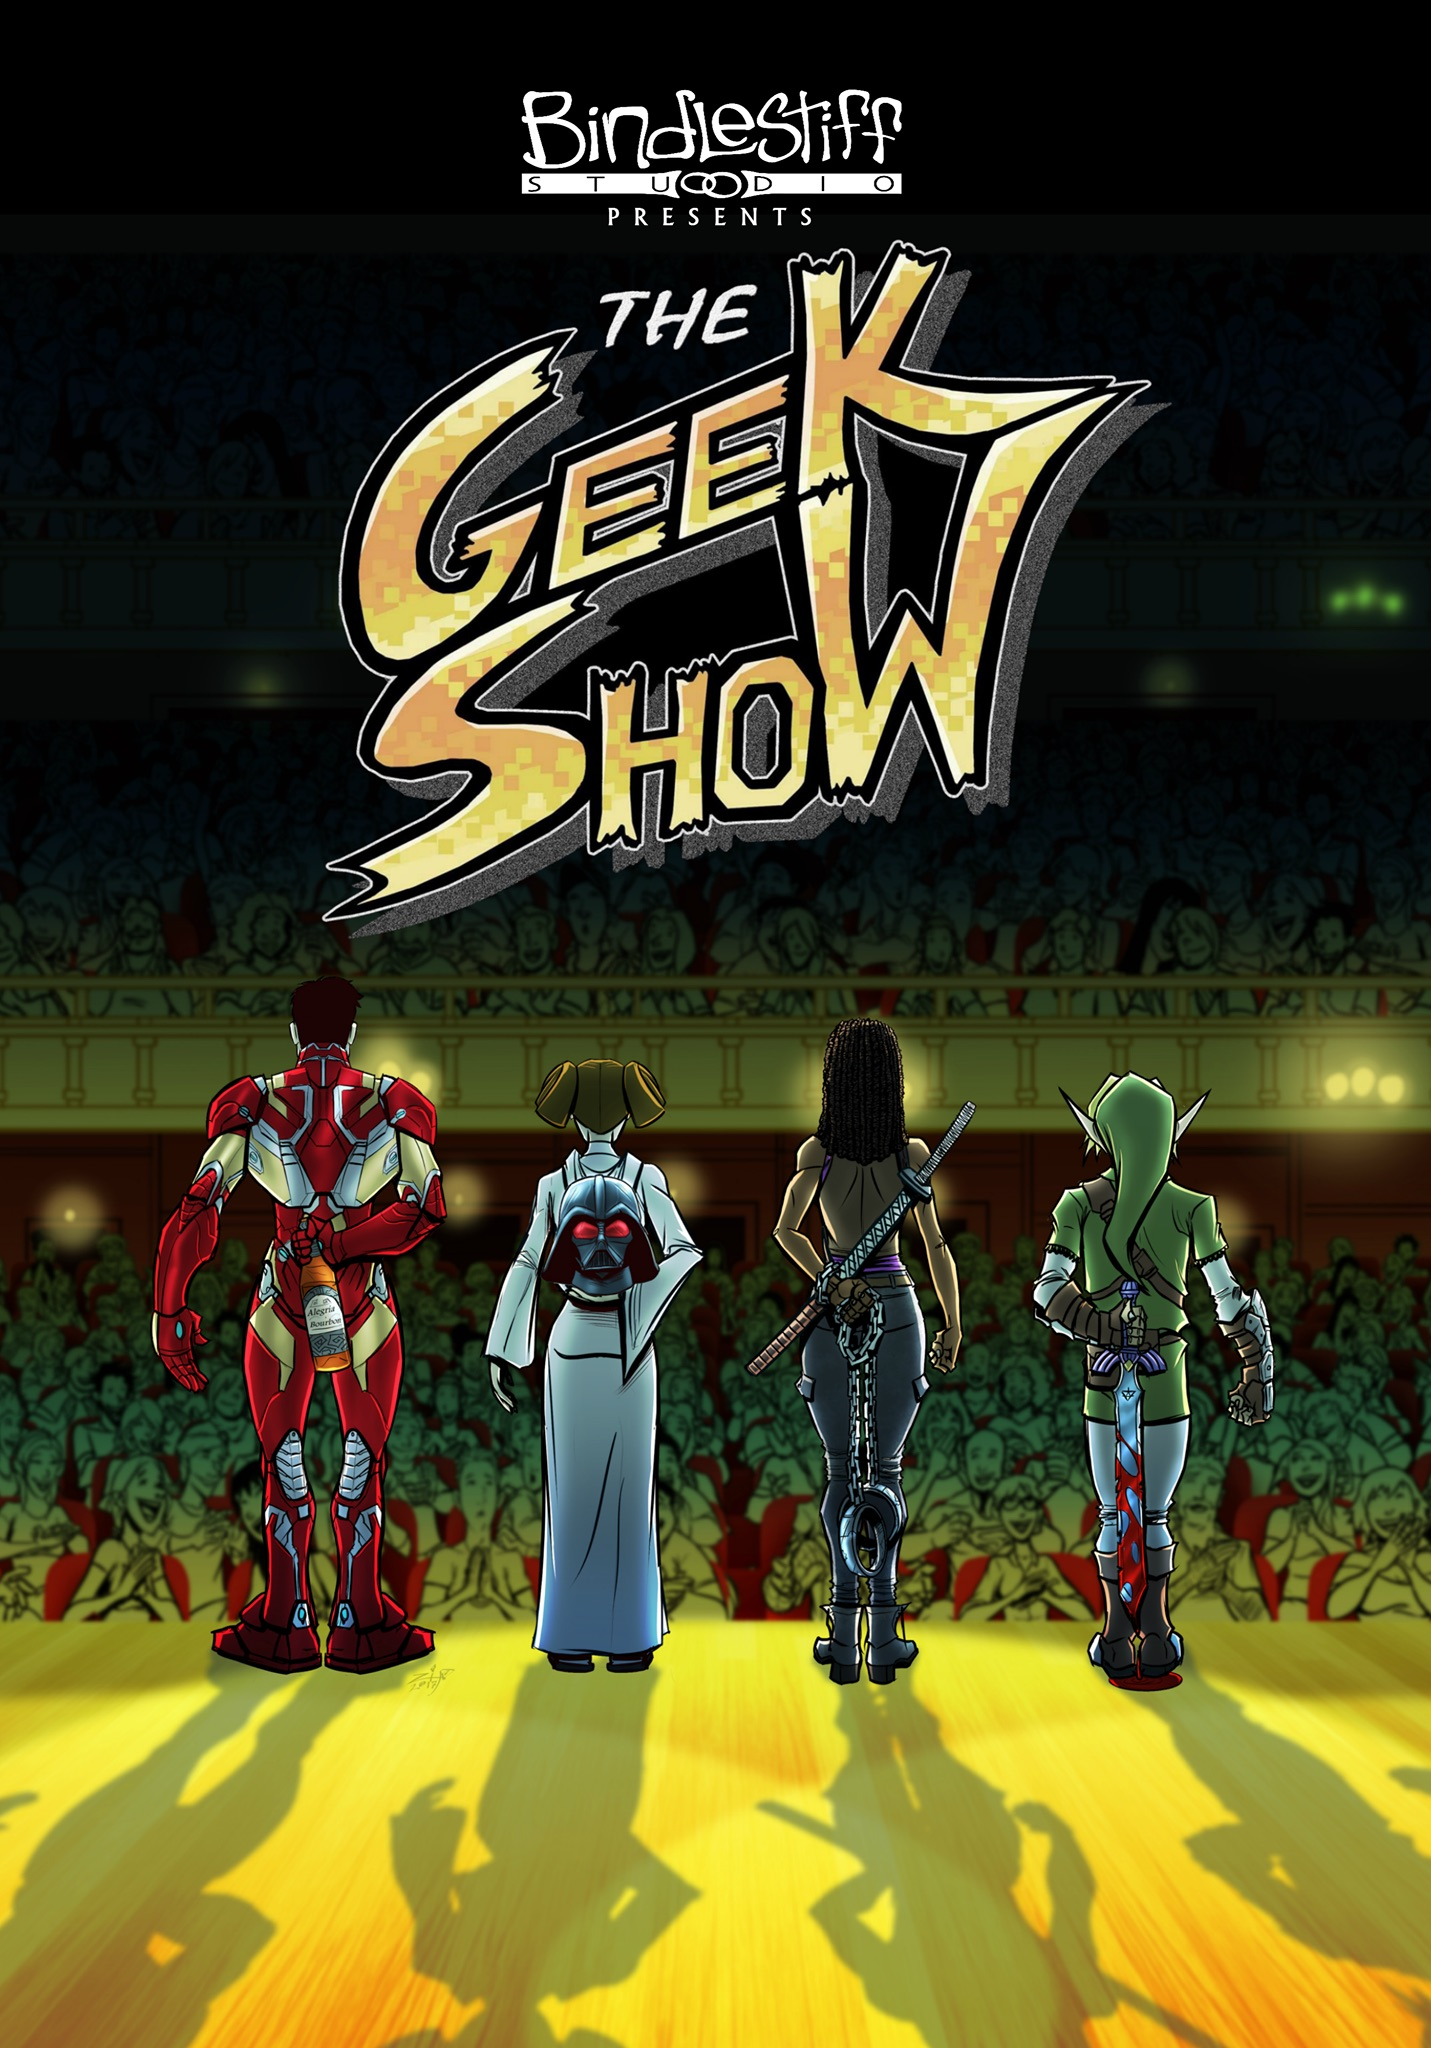 The Geek Show 2017 Poster (click to view)